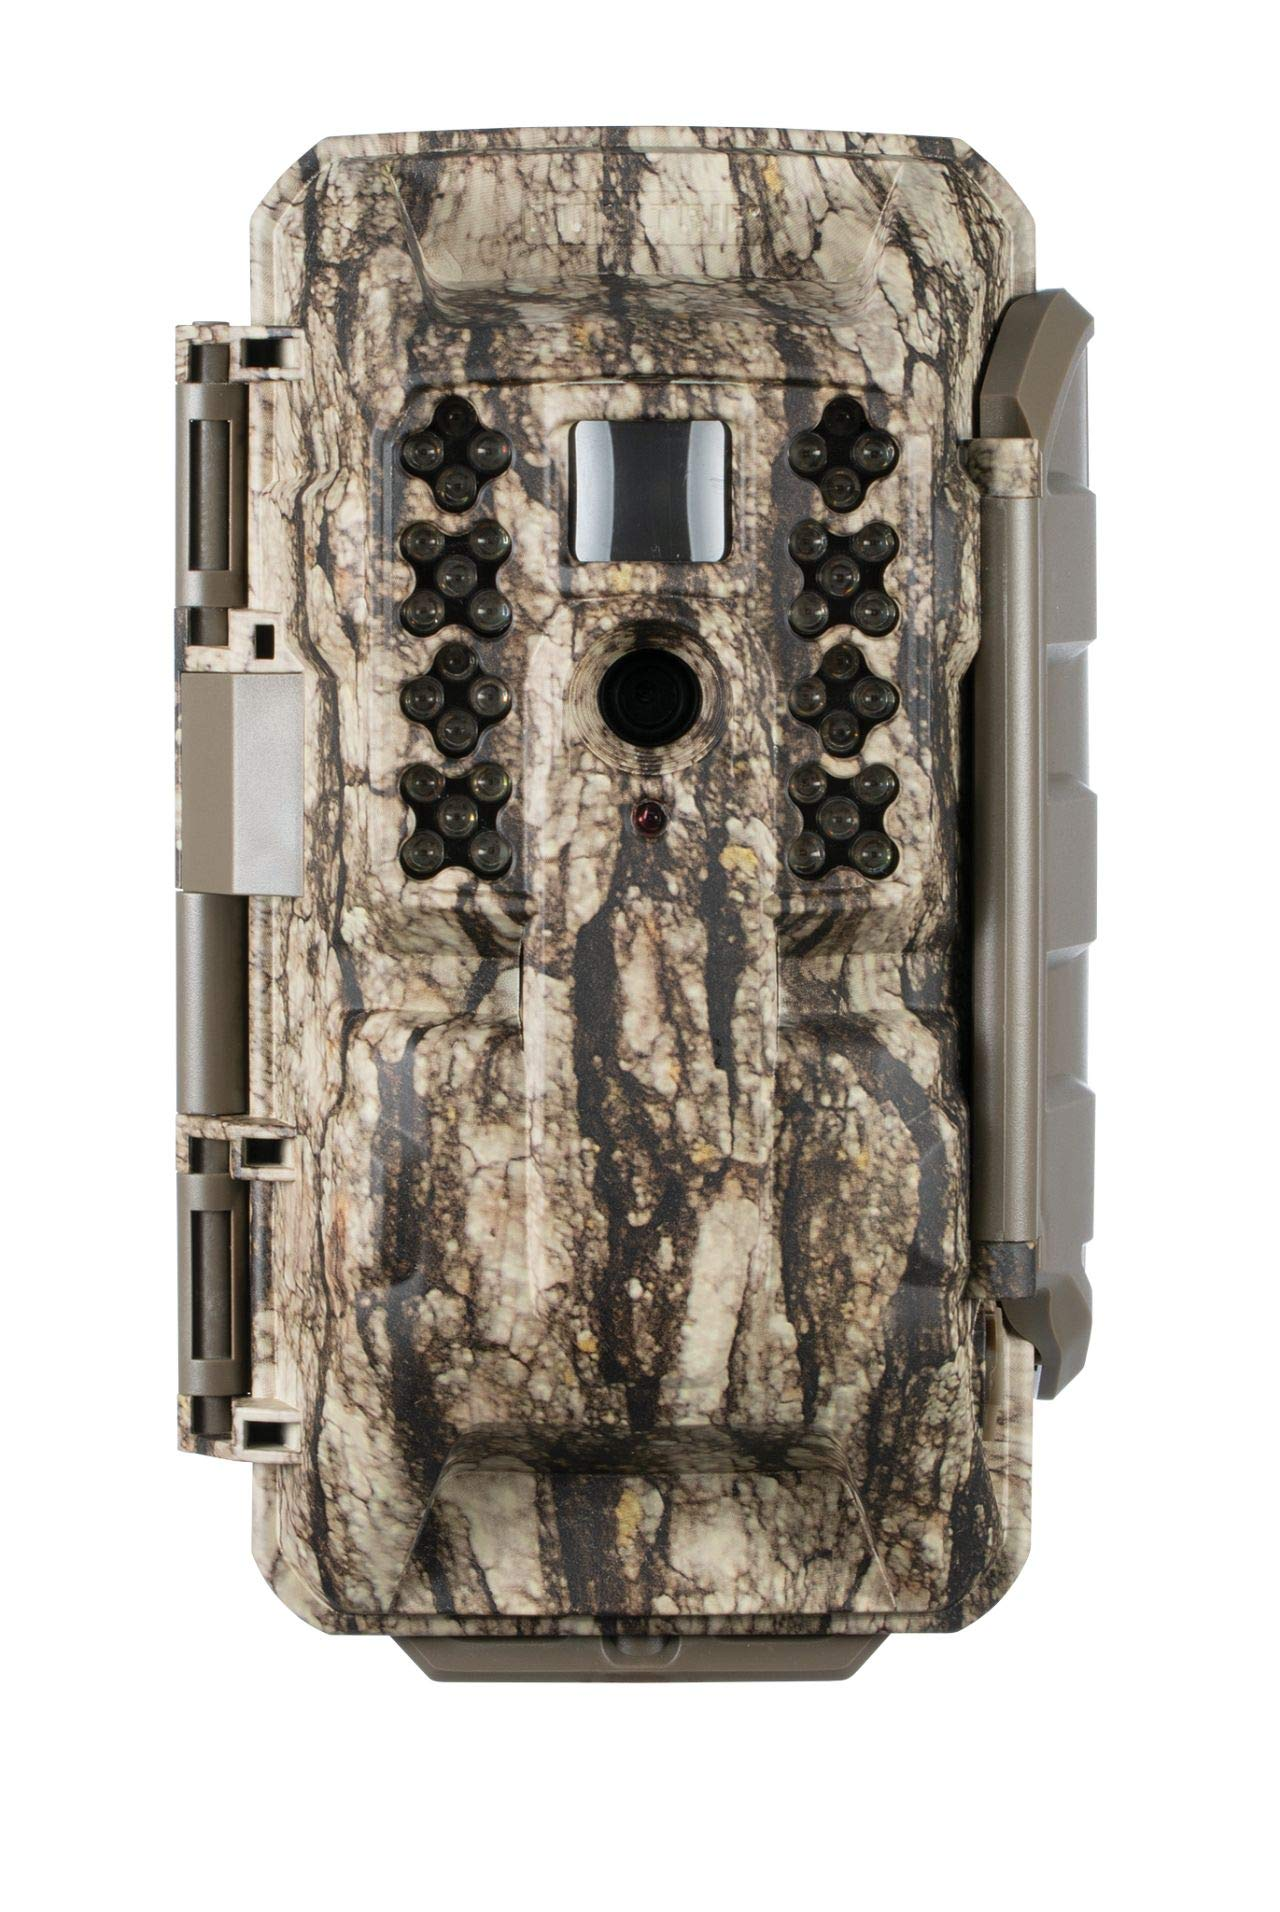 Moultrie Mobile XV7000i Cellular Trail Camera | Verizon Network by Moultrie